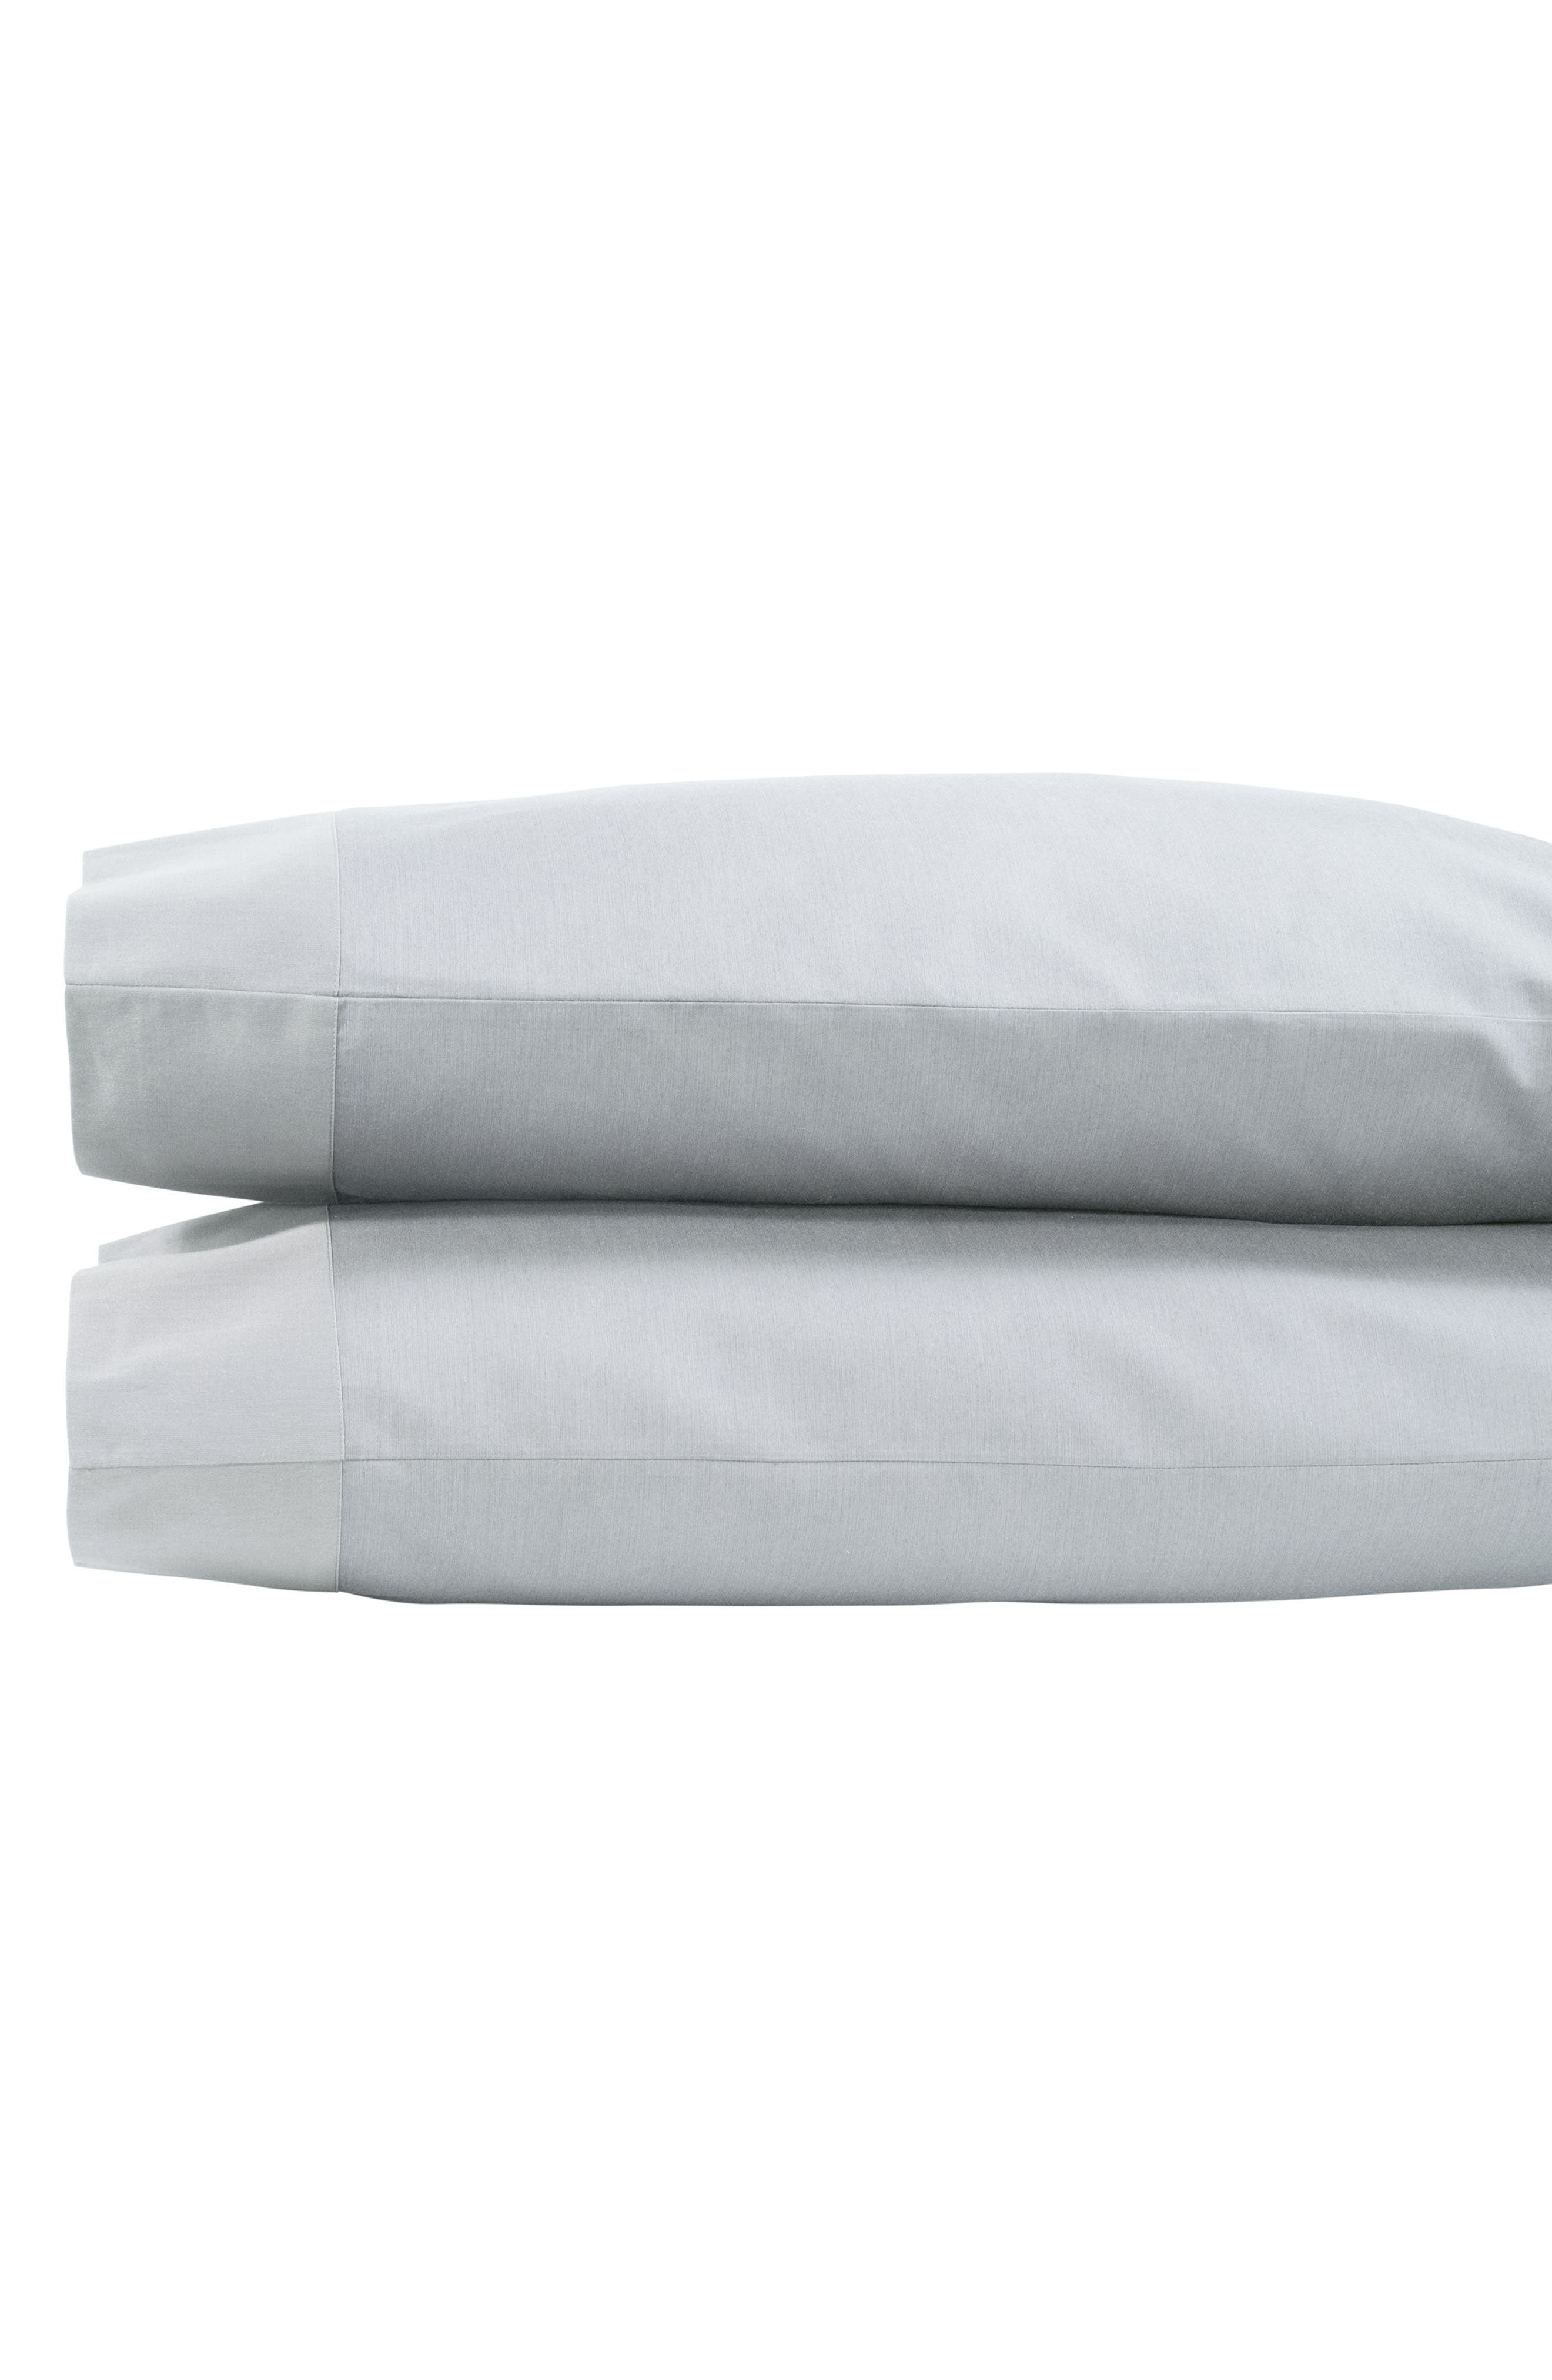 MICHAEL ARAM Striated Band 400 Thread Count Pillowcases, Main, color, GRAY